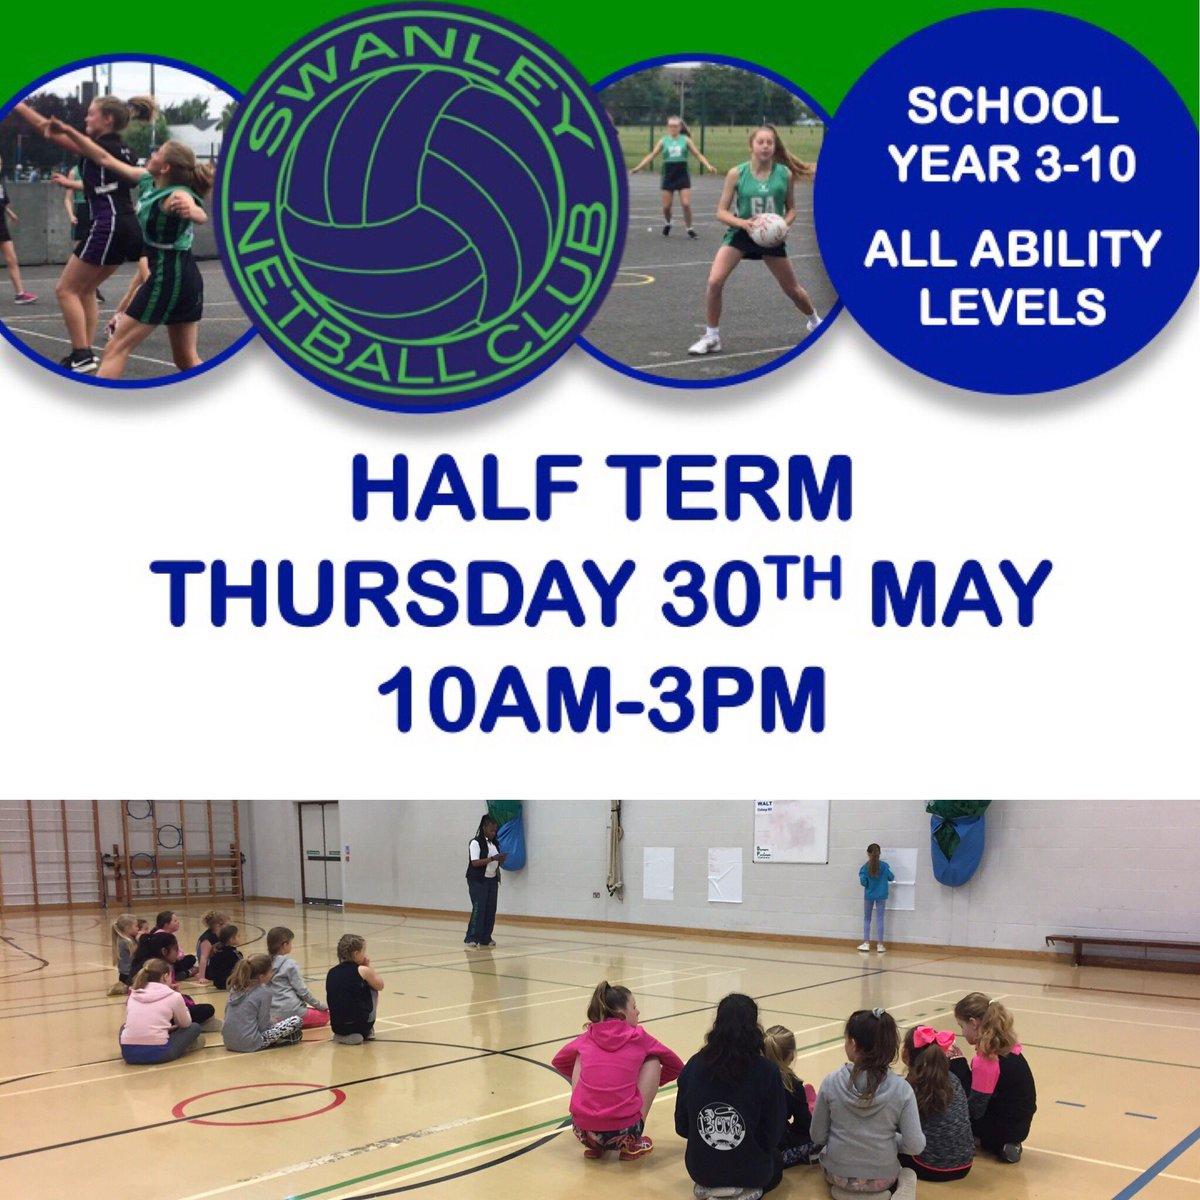 Great day of netball fun at the  @swanleync  MayHalf Term Netball Camp  @KentSport1 @steephillonline @StPaulsSwanley @DSTC_PE @BullersPe @LondonSENetball @HandleHorizon @7oaksSports @joydens_jnr @hextableprimary #netball